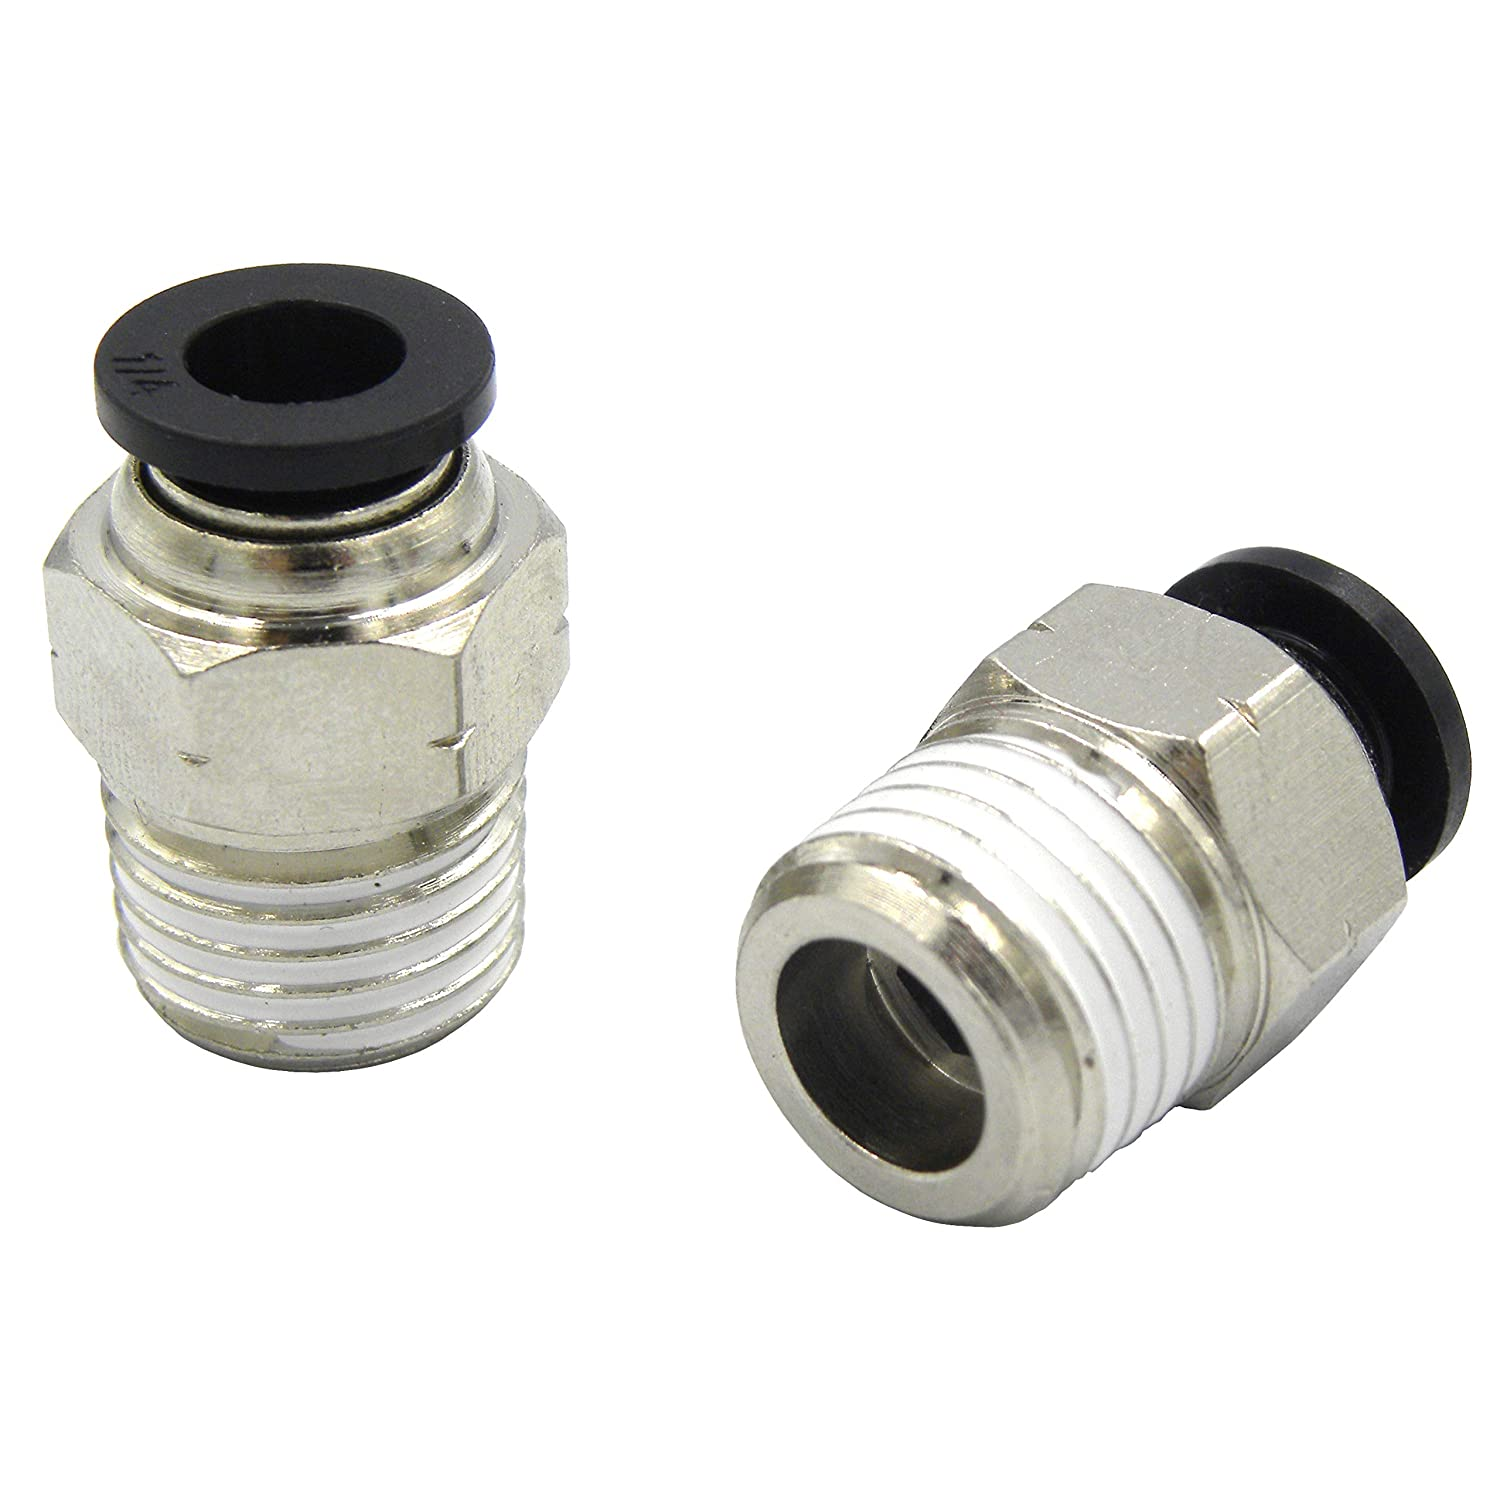 5//16 Tube OD x 1//4 NPT Thread 10 per Pack Wanm Pneumatic Push to Connect Tube Fittings Male Elbow